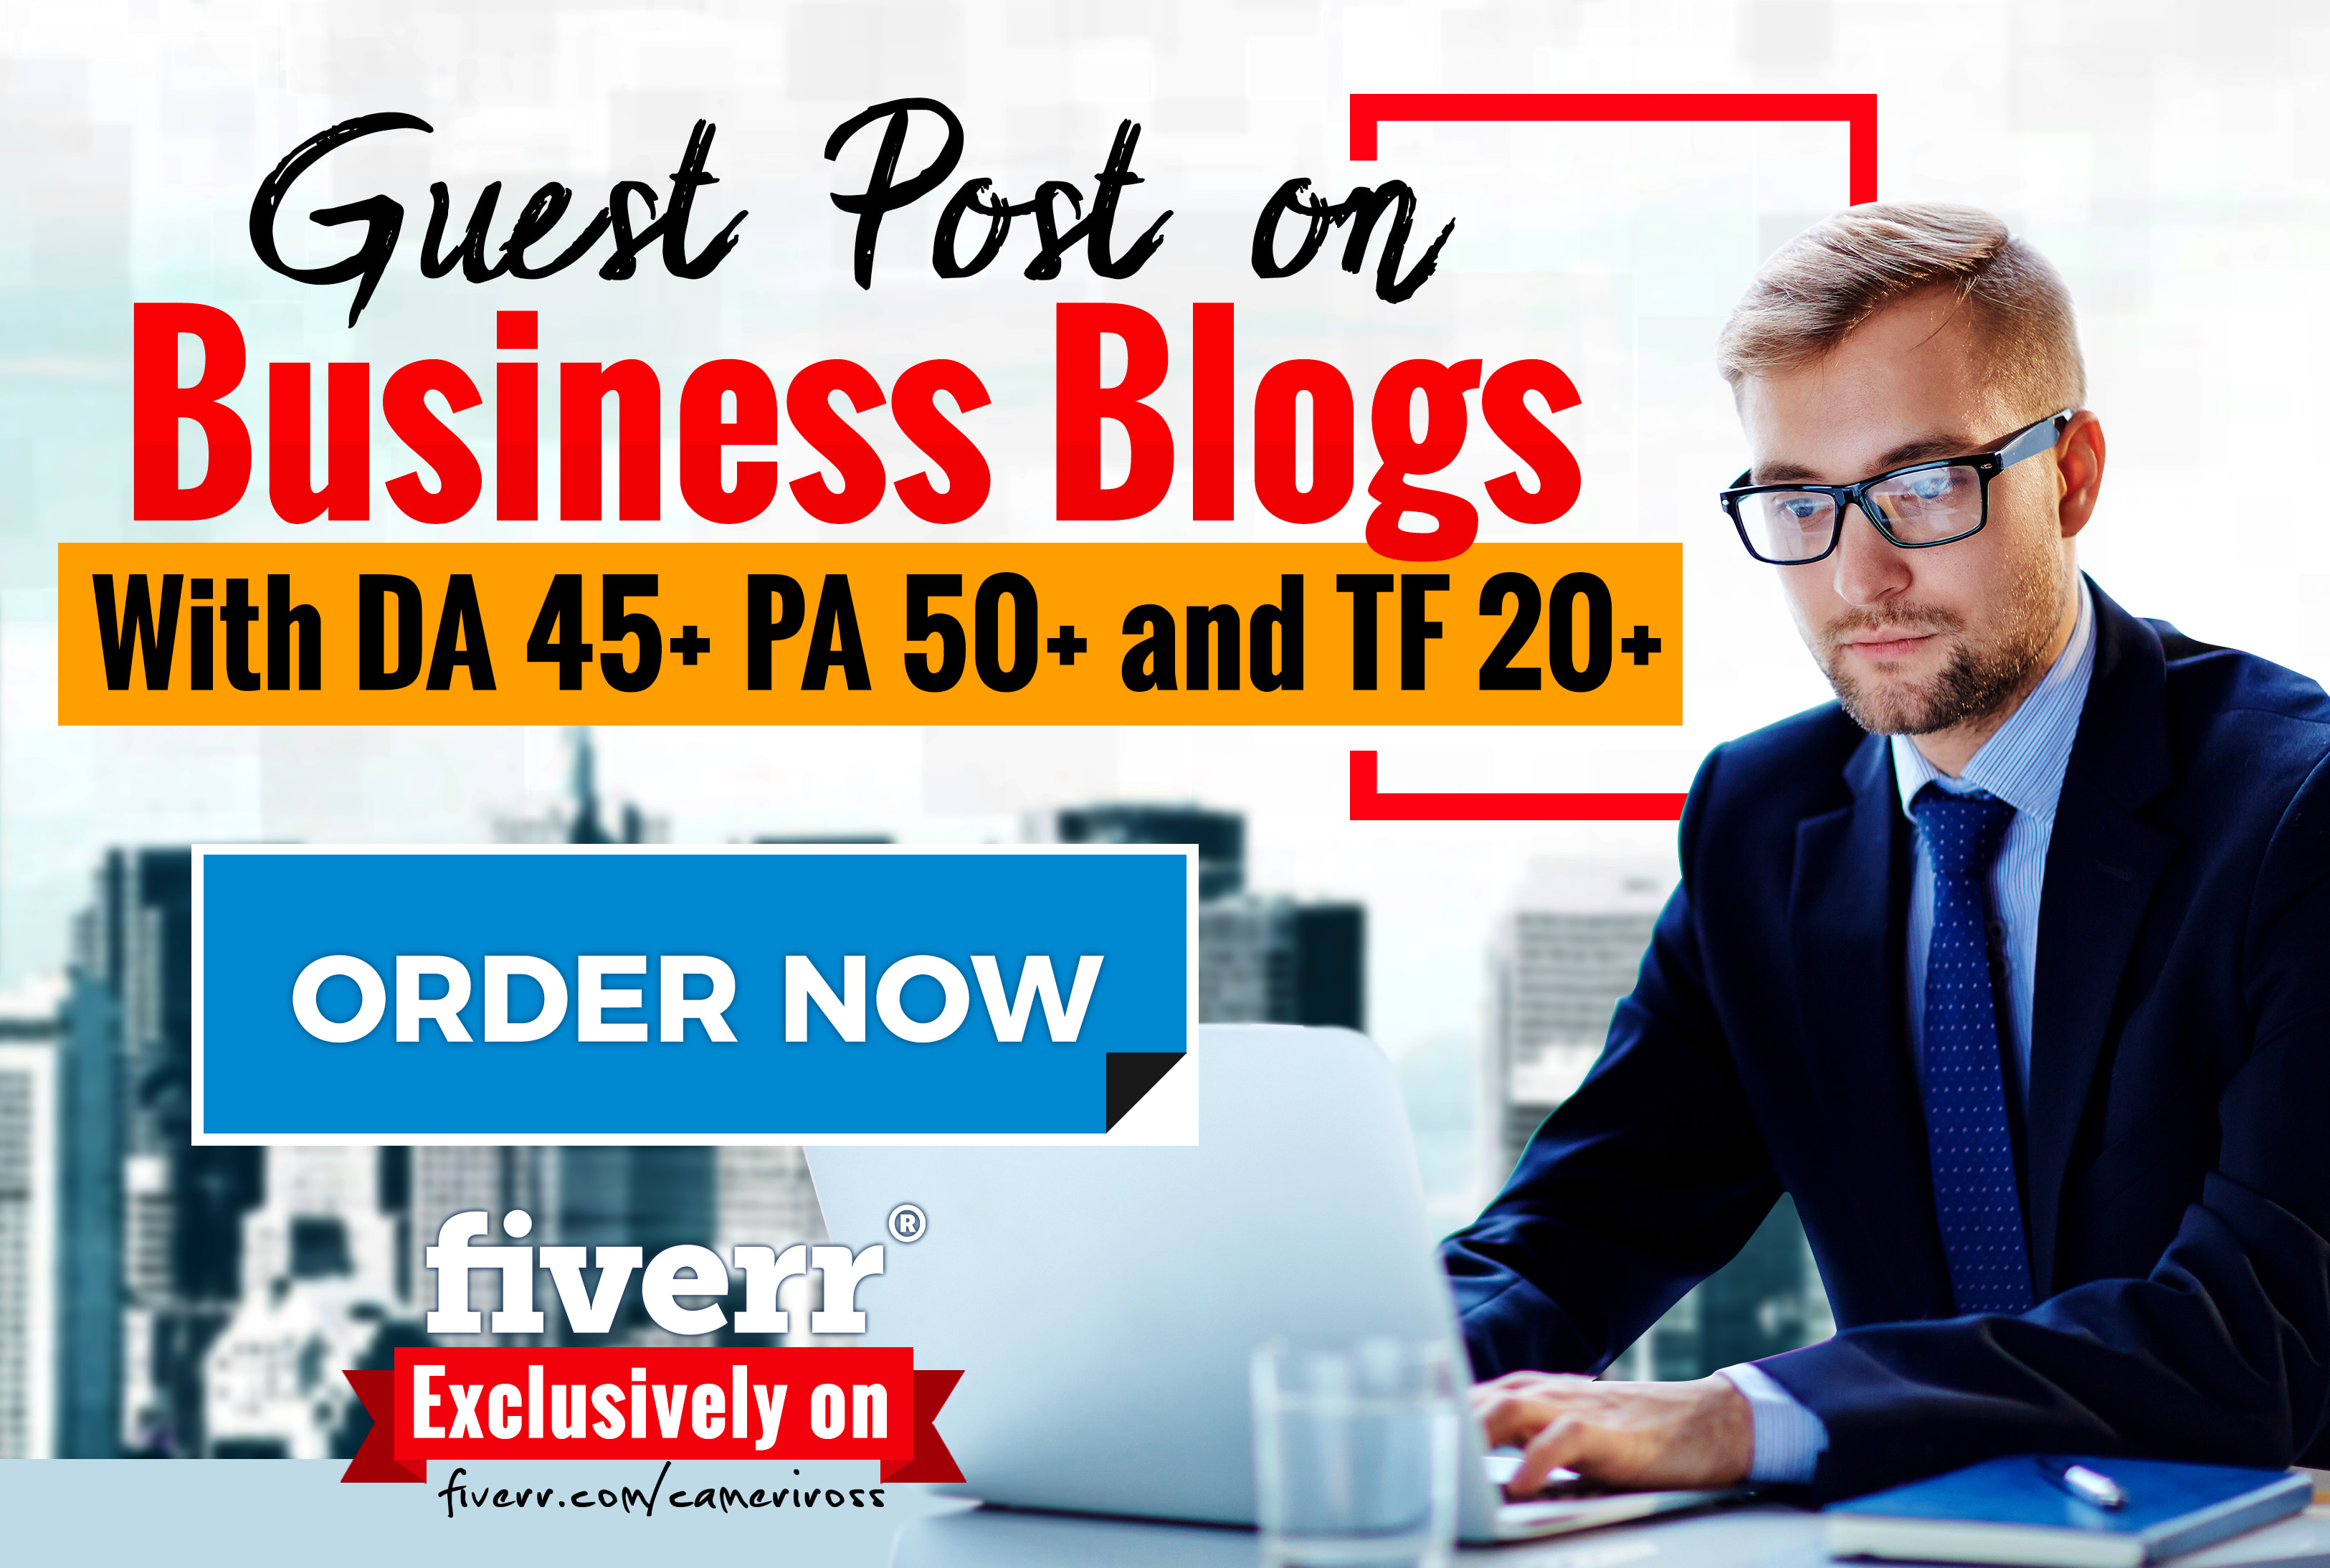 do guest posting in da 45 business blog